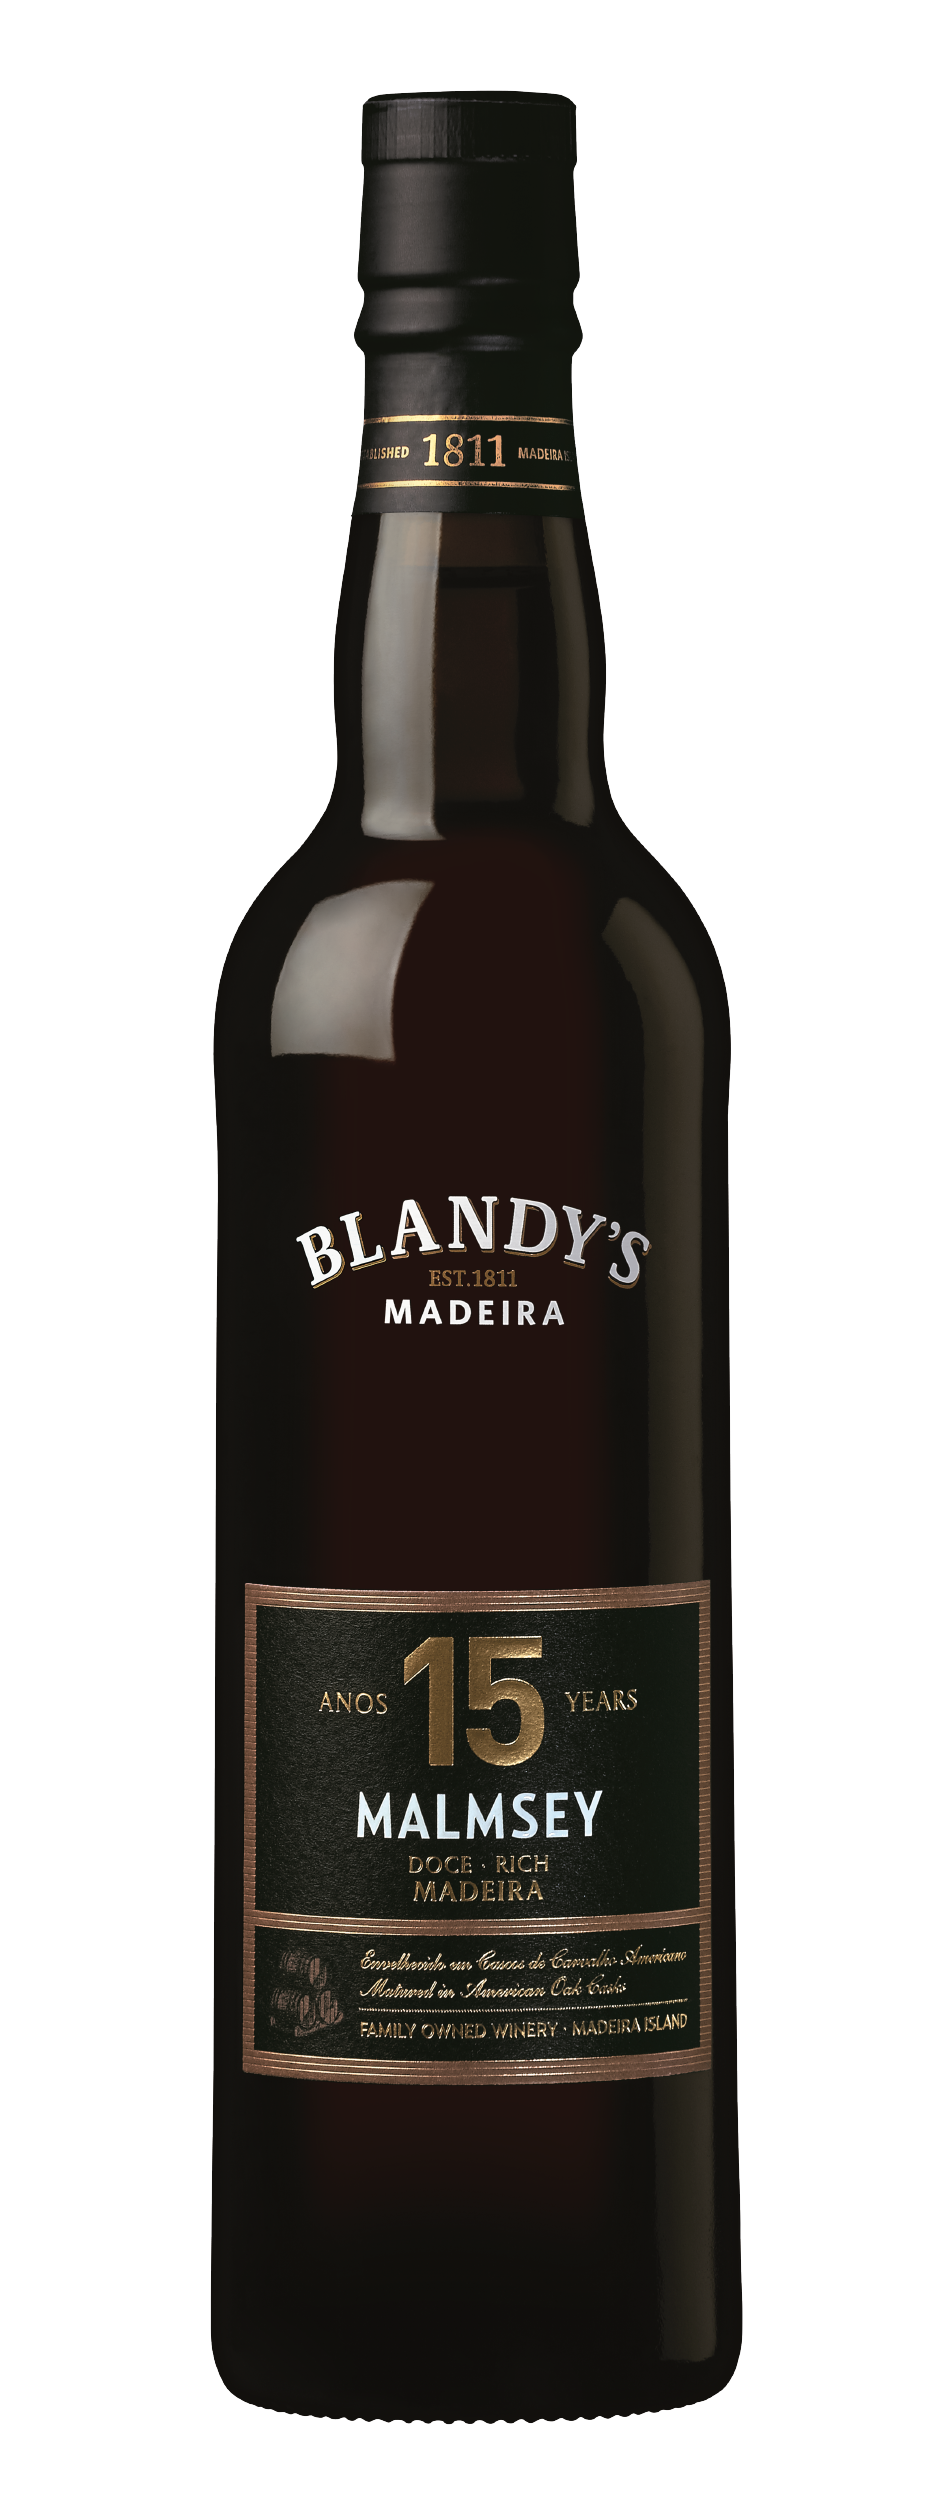 Product Image for BLANDY'S MALMSEY 15 YEAR OLD